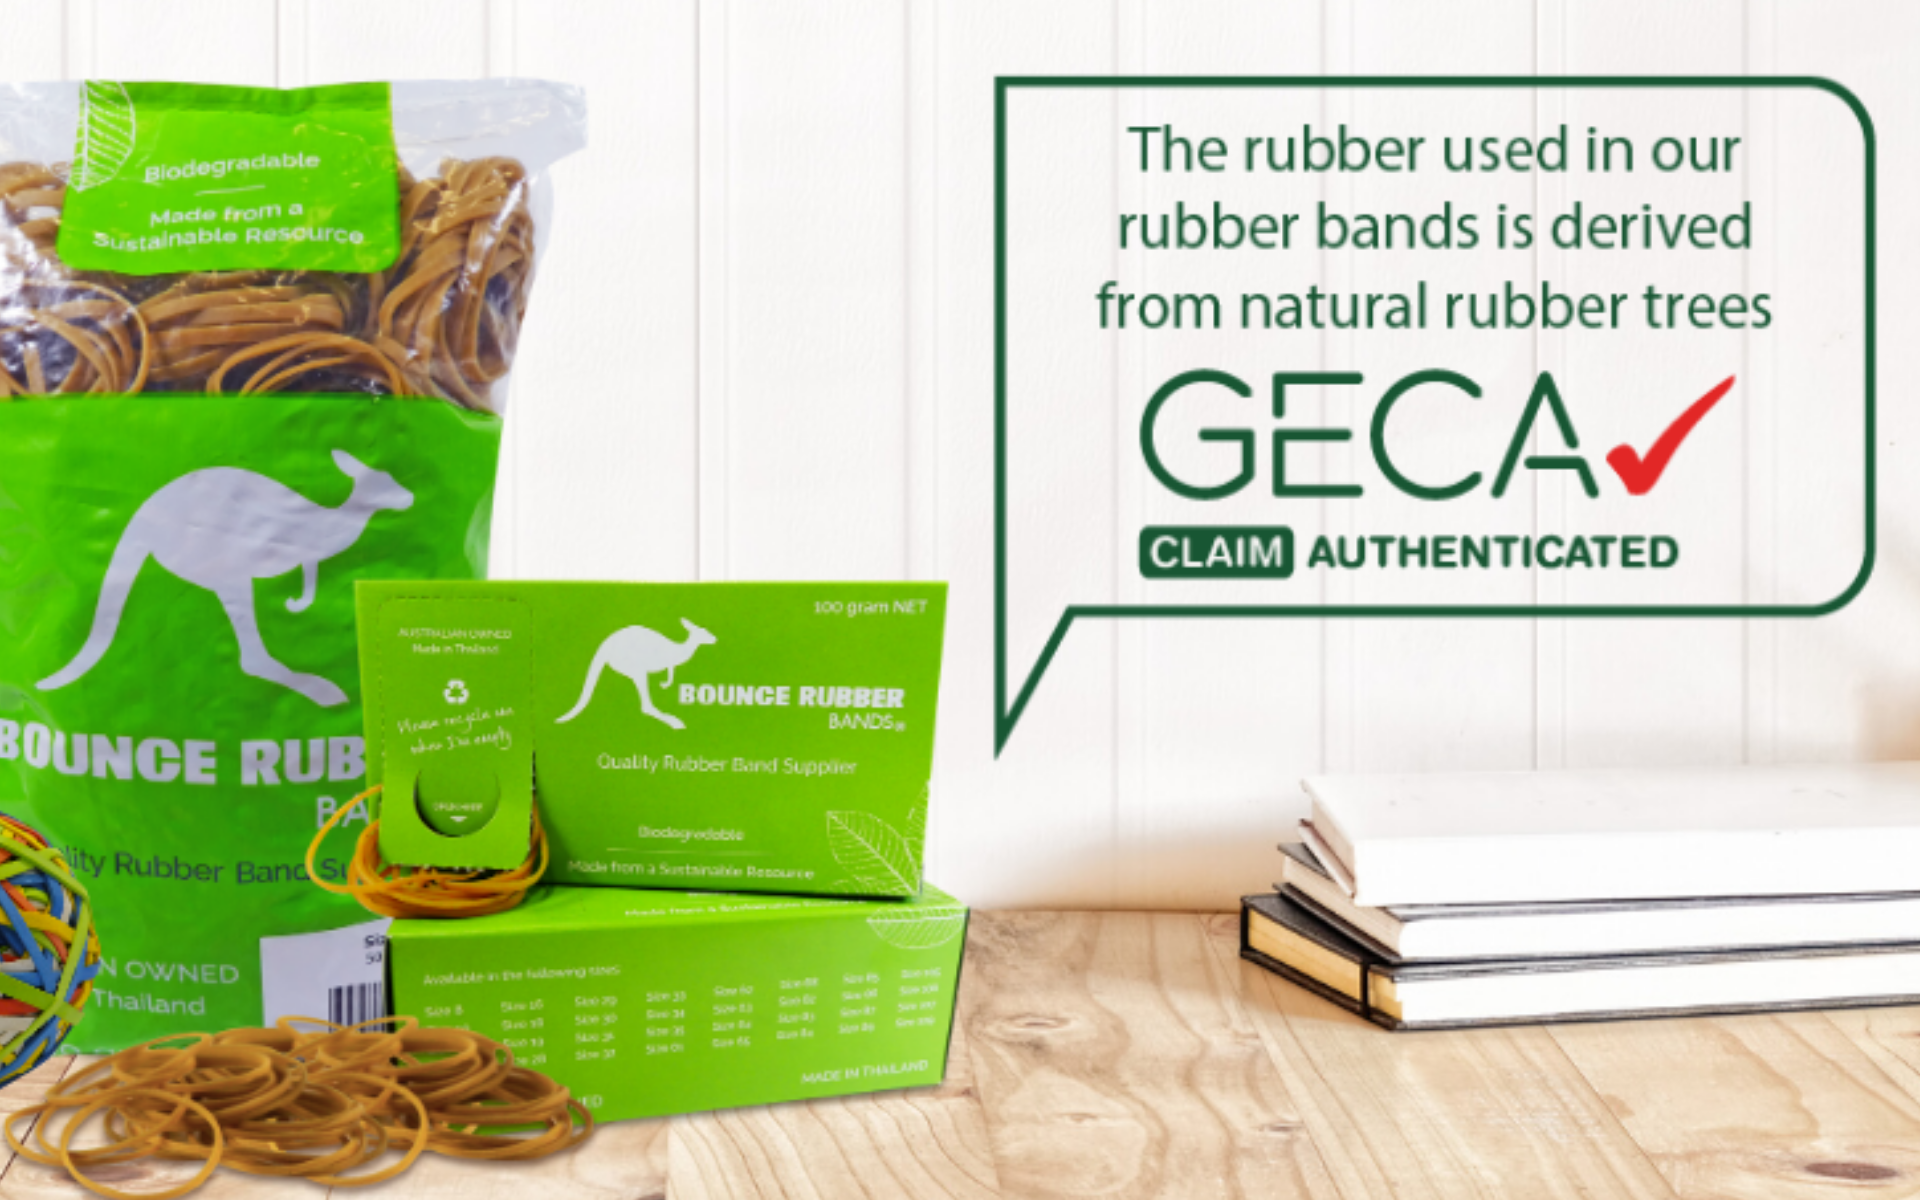 GECA Blog Cover Image for Bounce Rubber Bands